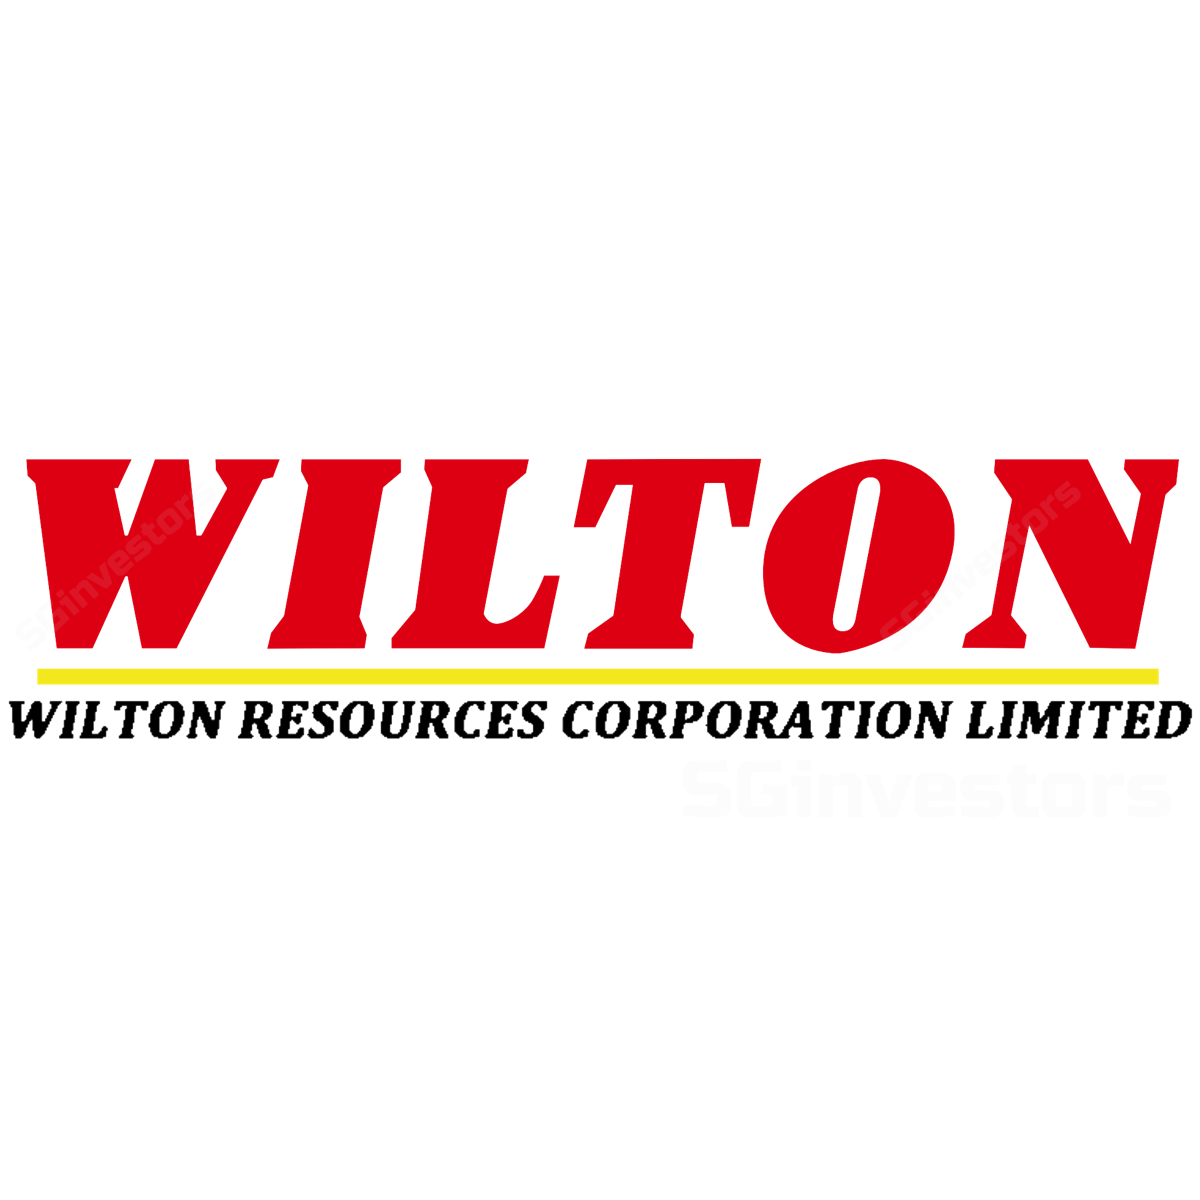 Wilton Resources Corporation Limited - NRA Capital Research 2017-07-27: Move Into Production Phase May Spur Future Rerating